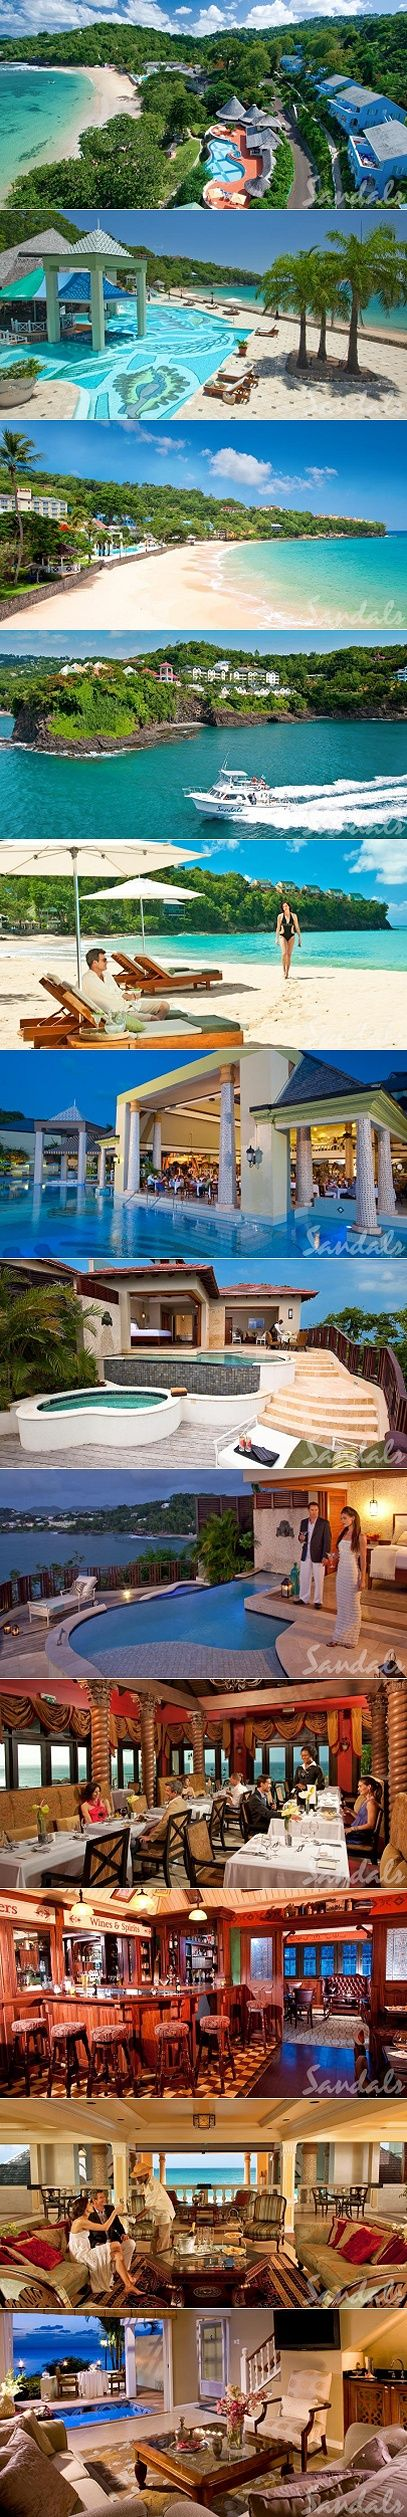 The Top Caribbean All Inclusive Resorts for Couples |Sandals La Toc St. Lucia - Paradise Getaways. #LuxuryHolidays